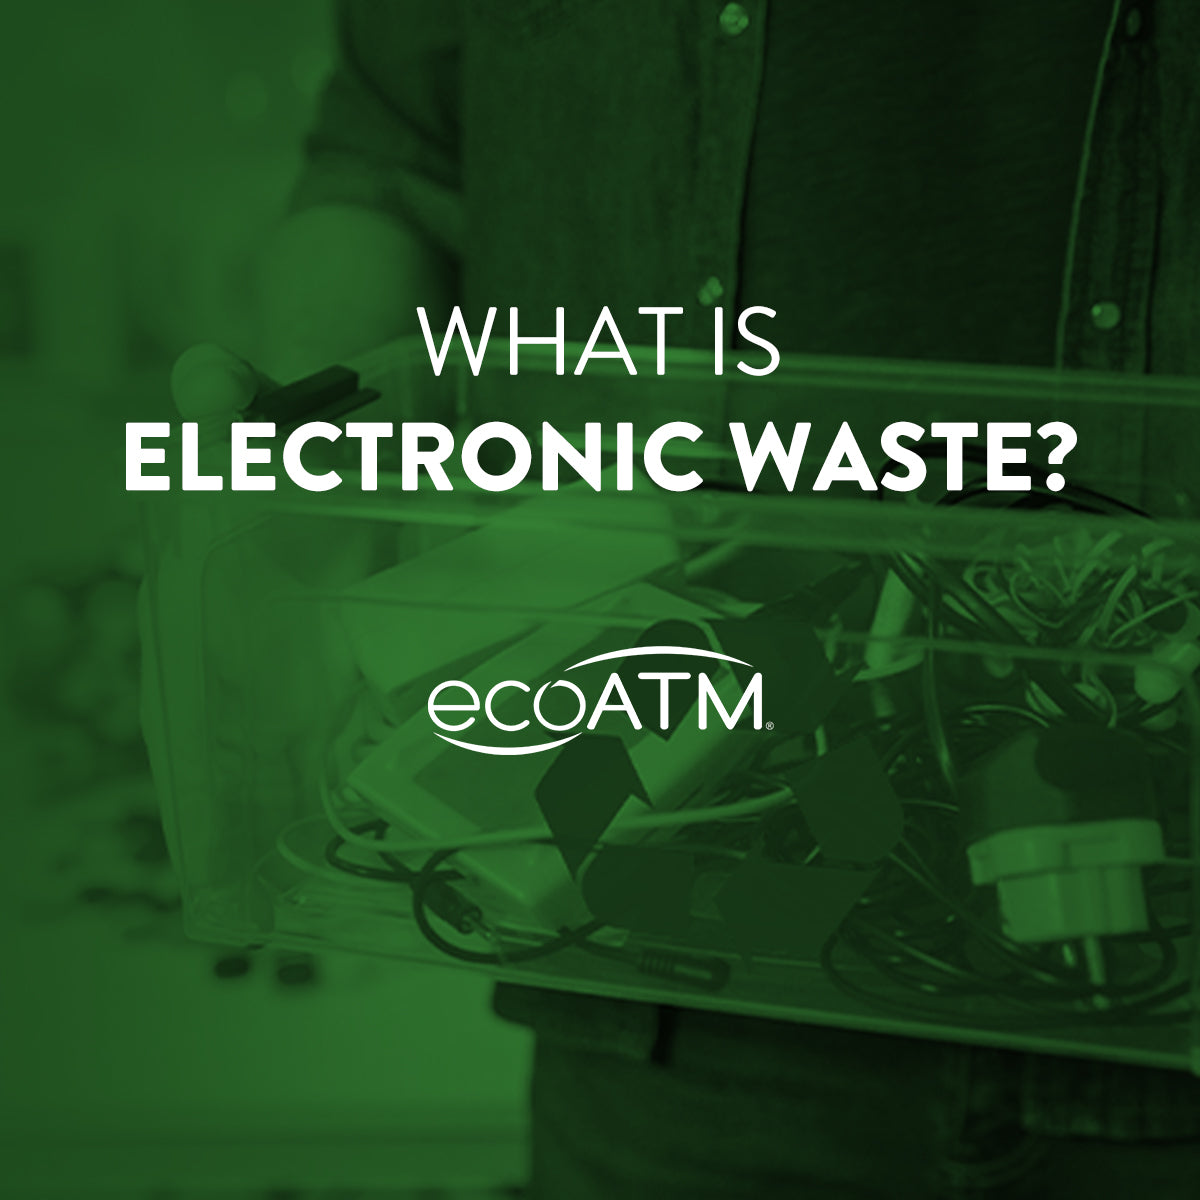 what is electronic waste